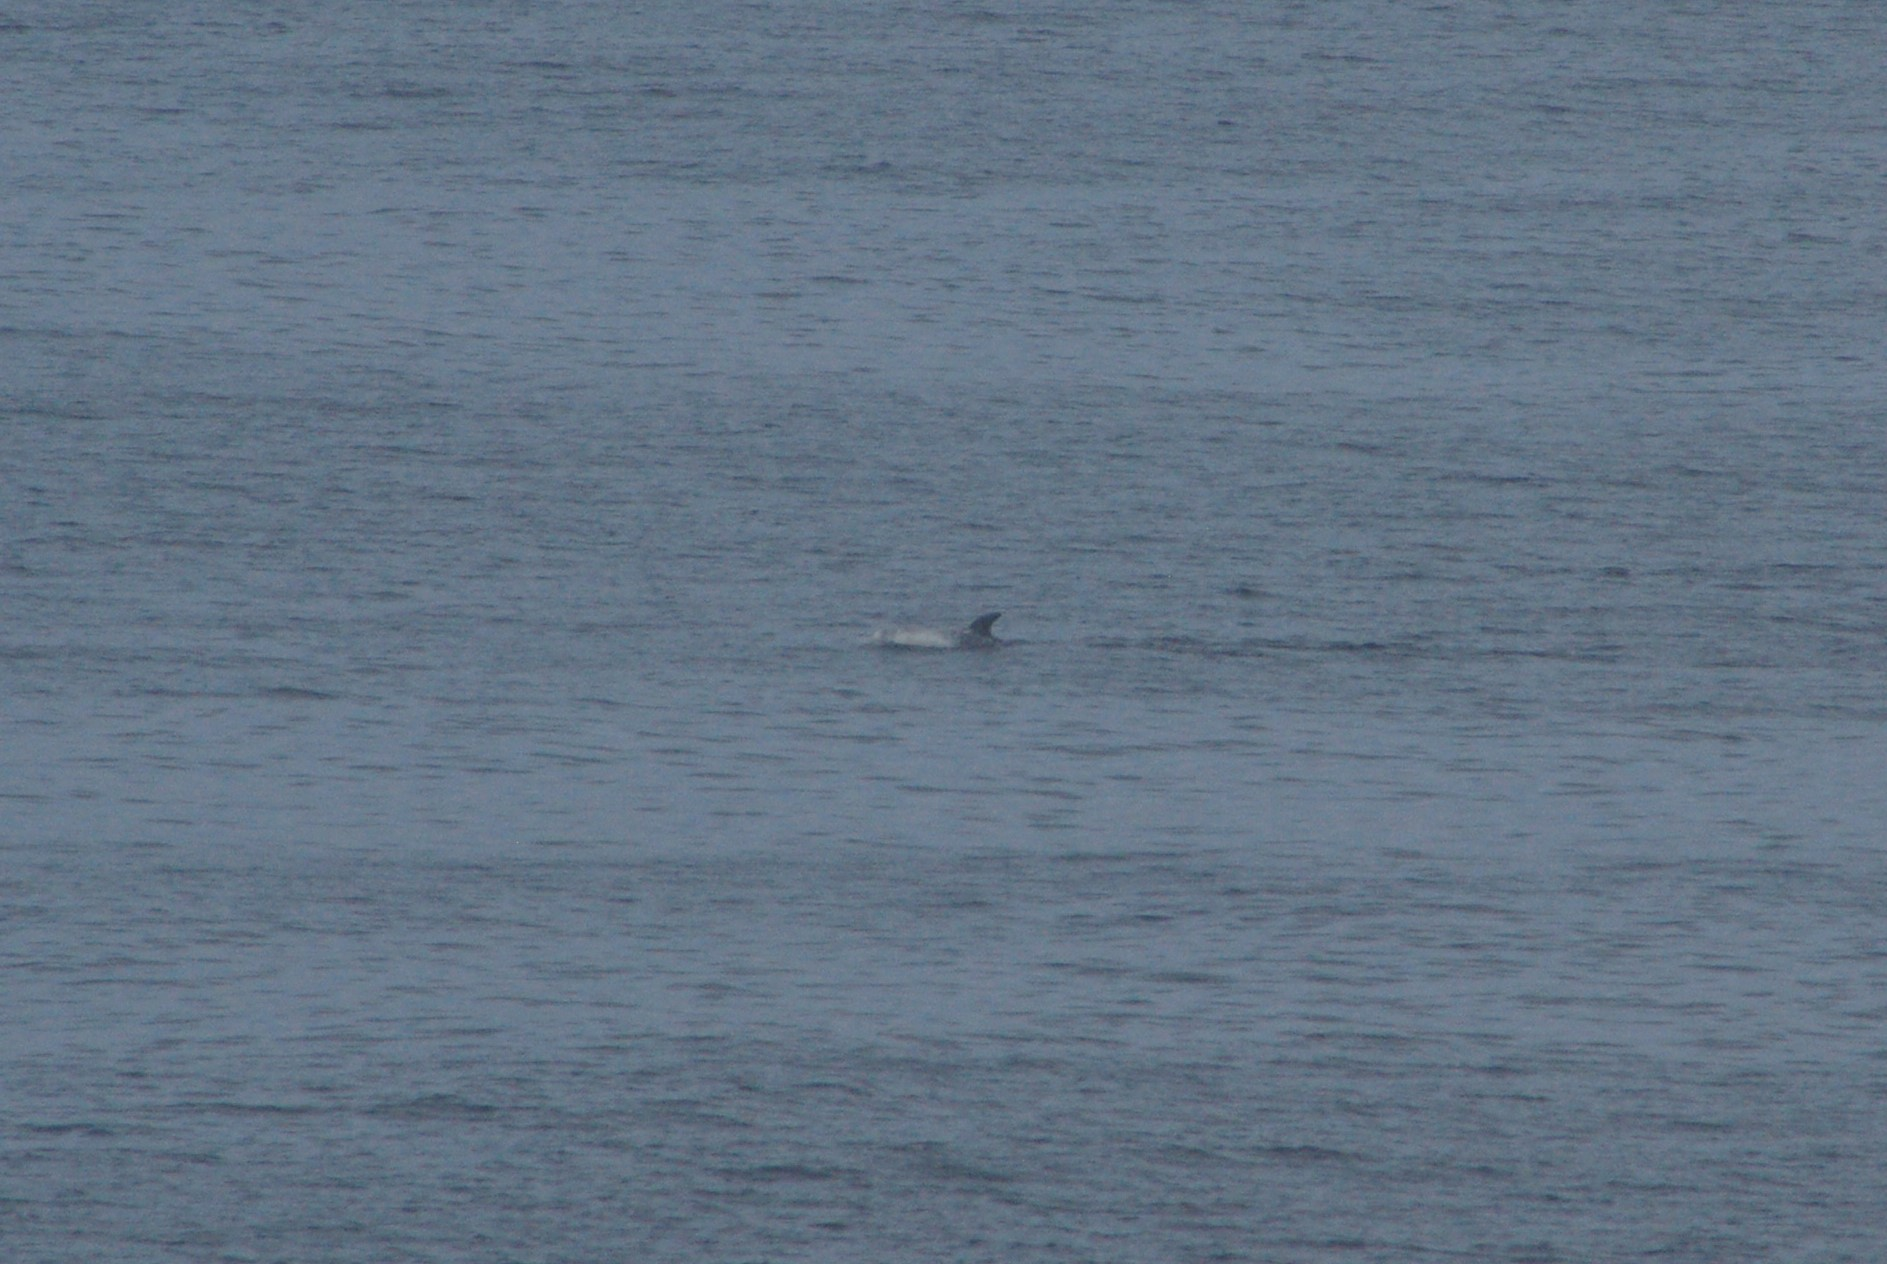 Yes, trust me, that blob in the middle is a Risso's dolphin